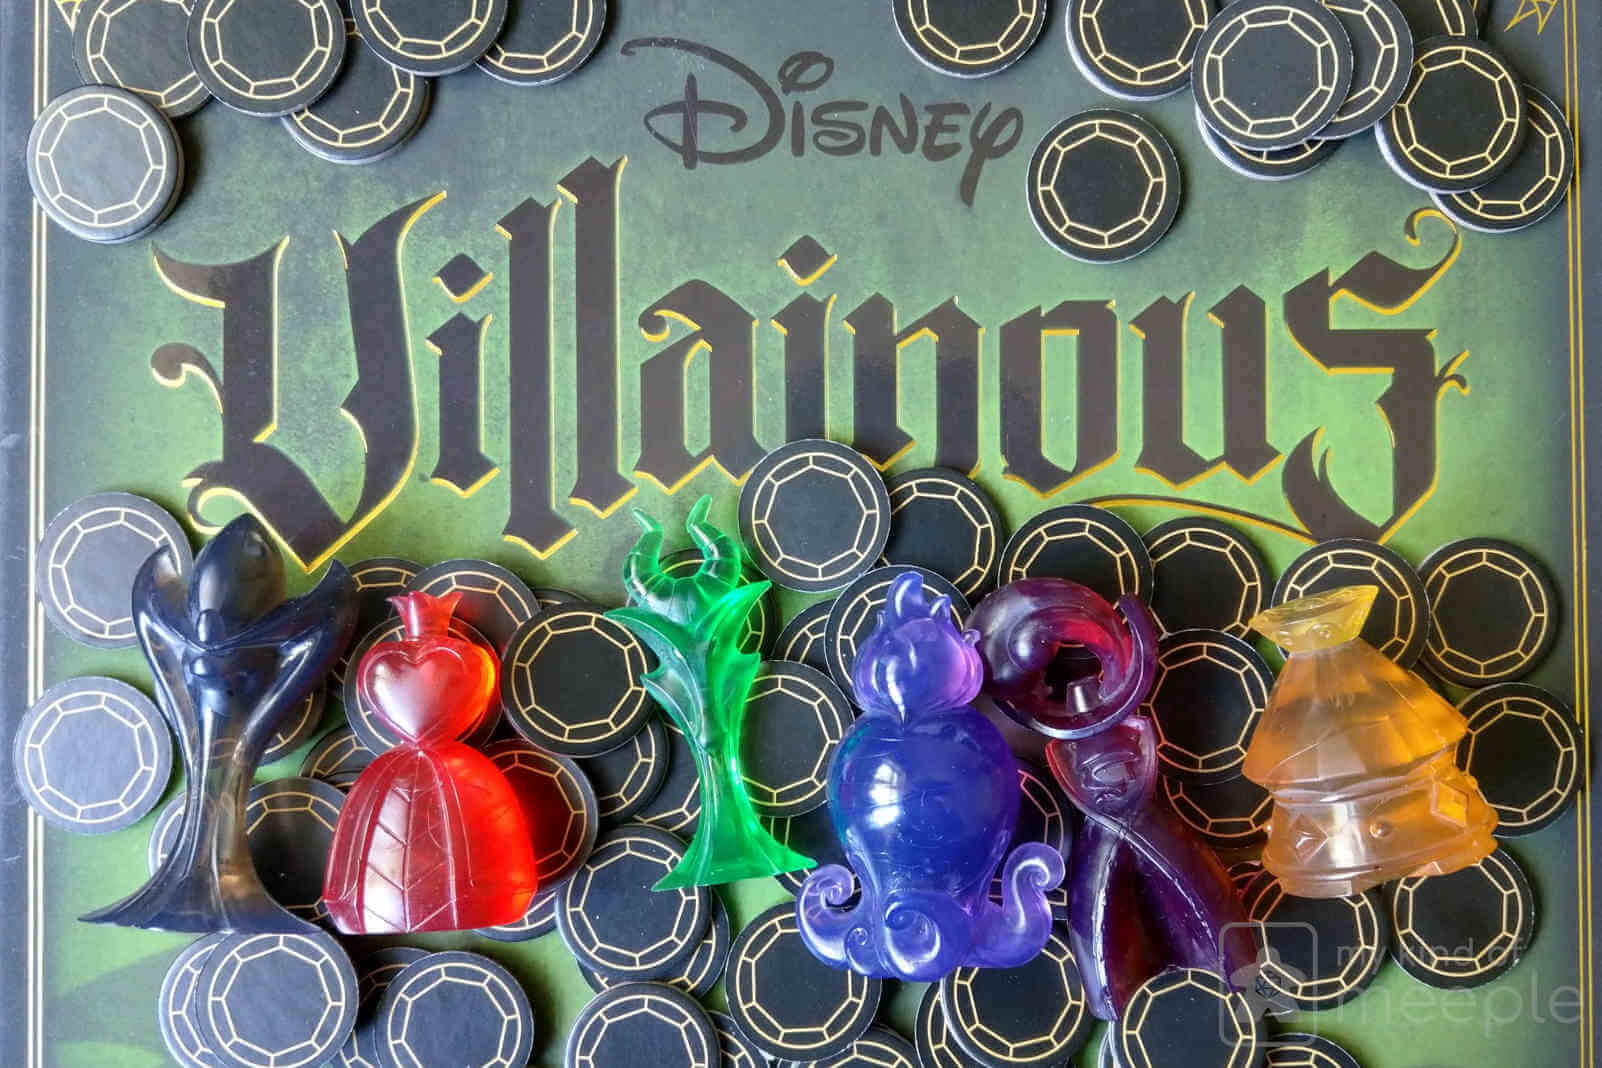 Disney Villainous minis tokens on box